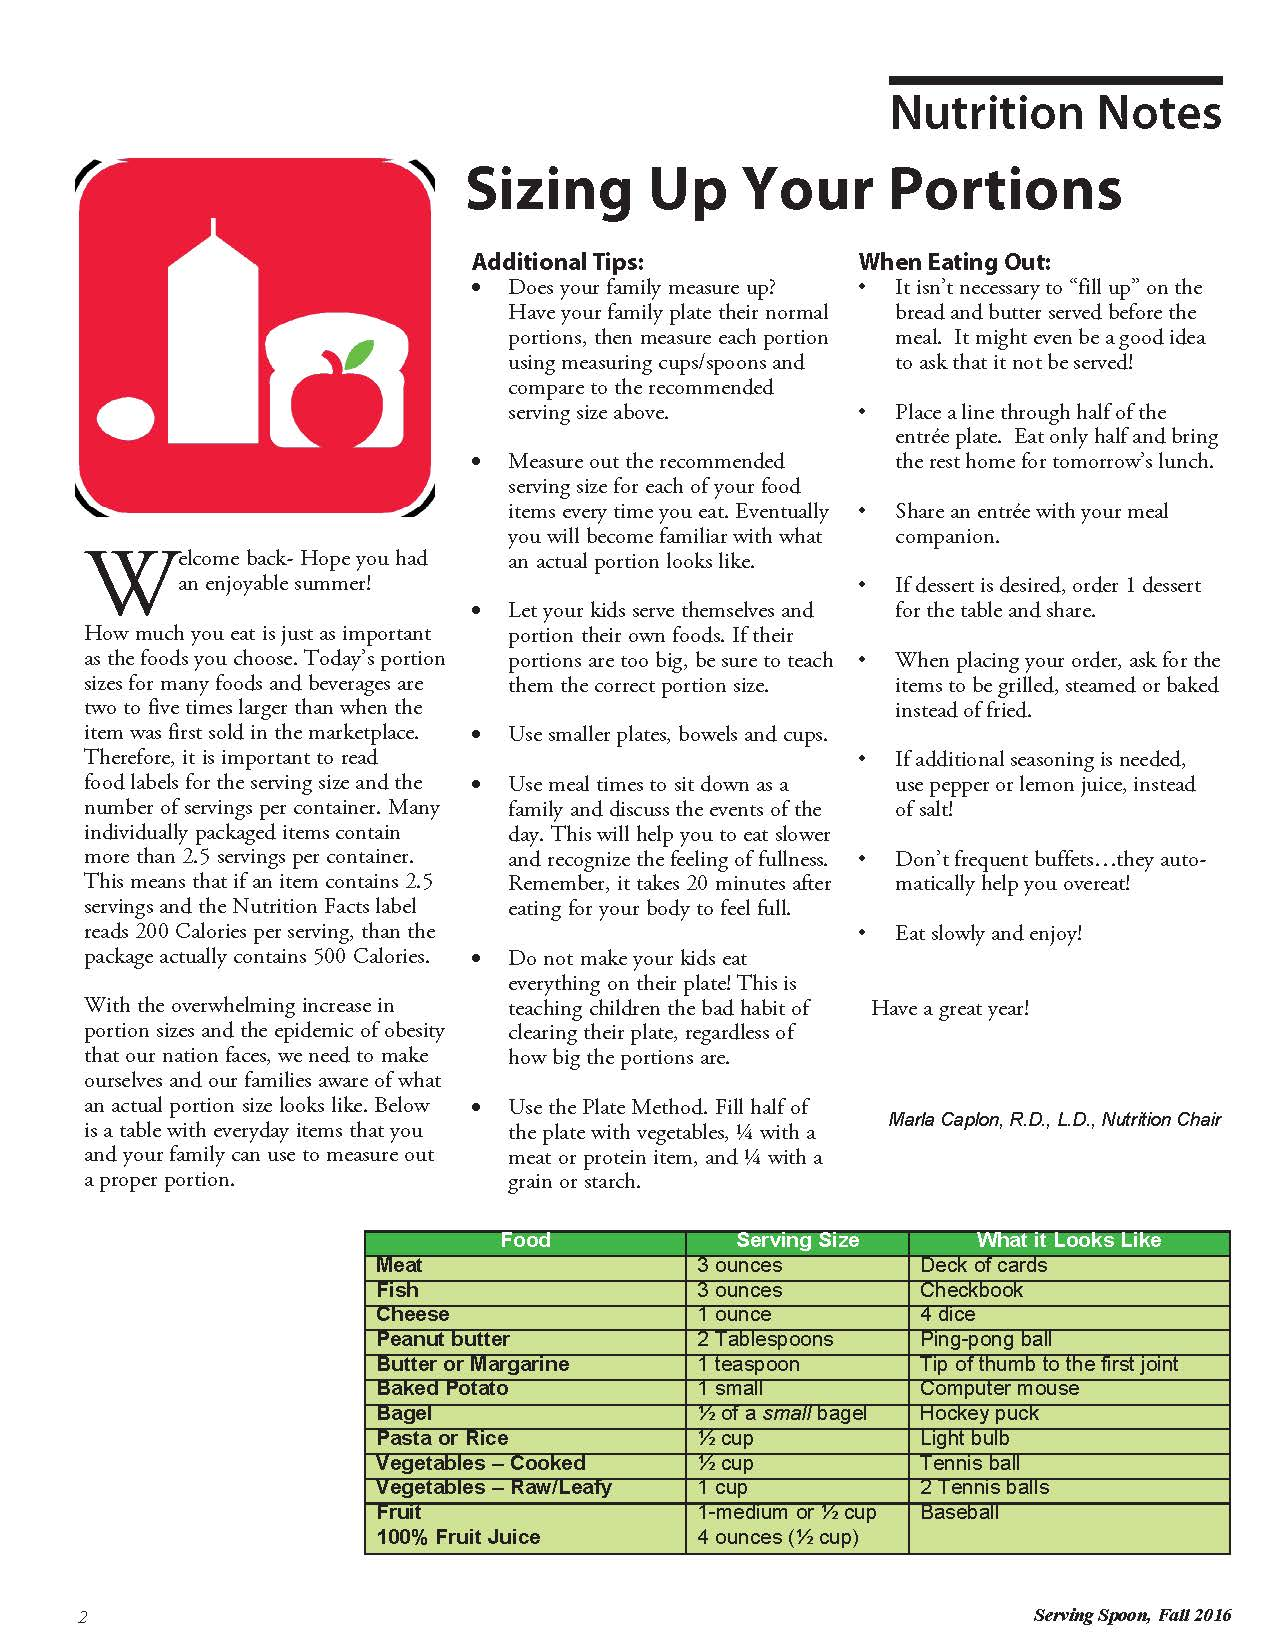 Sizing Up Your Portions Article